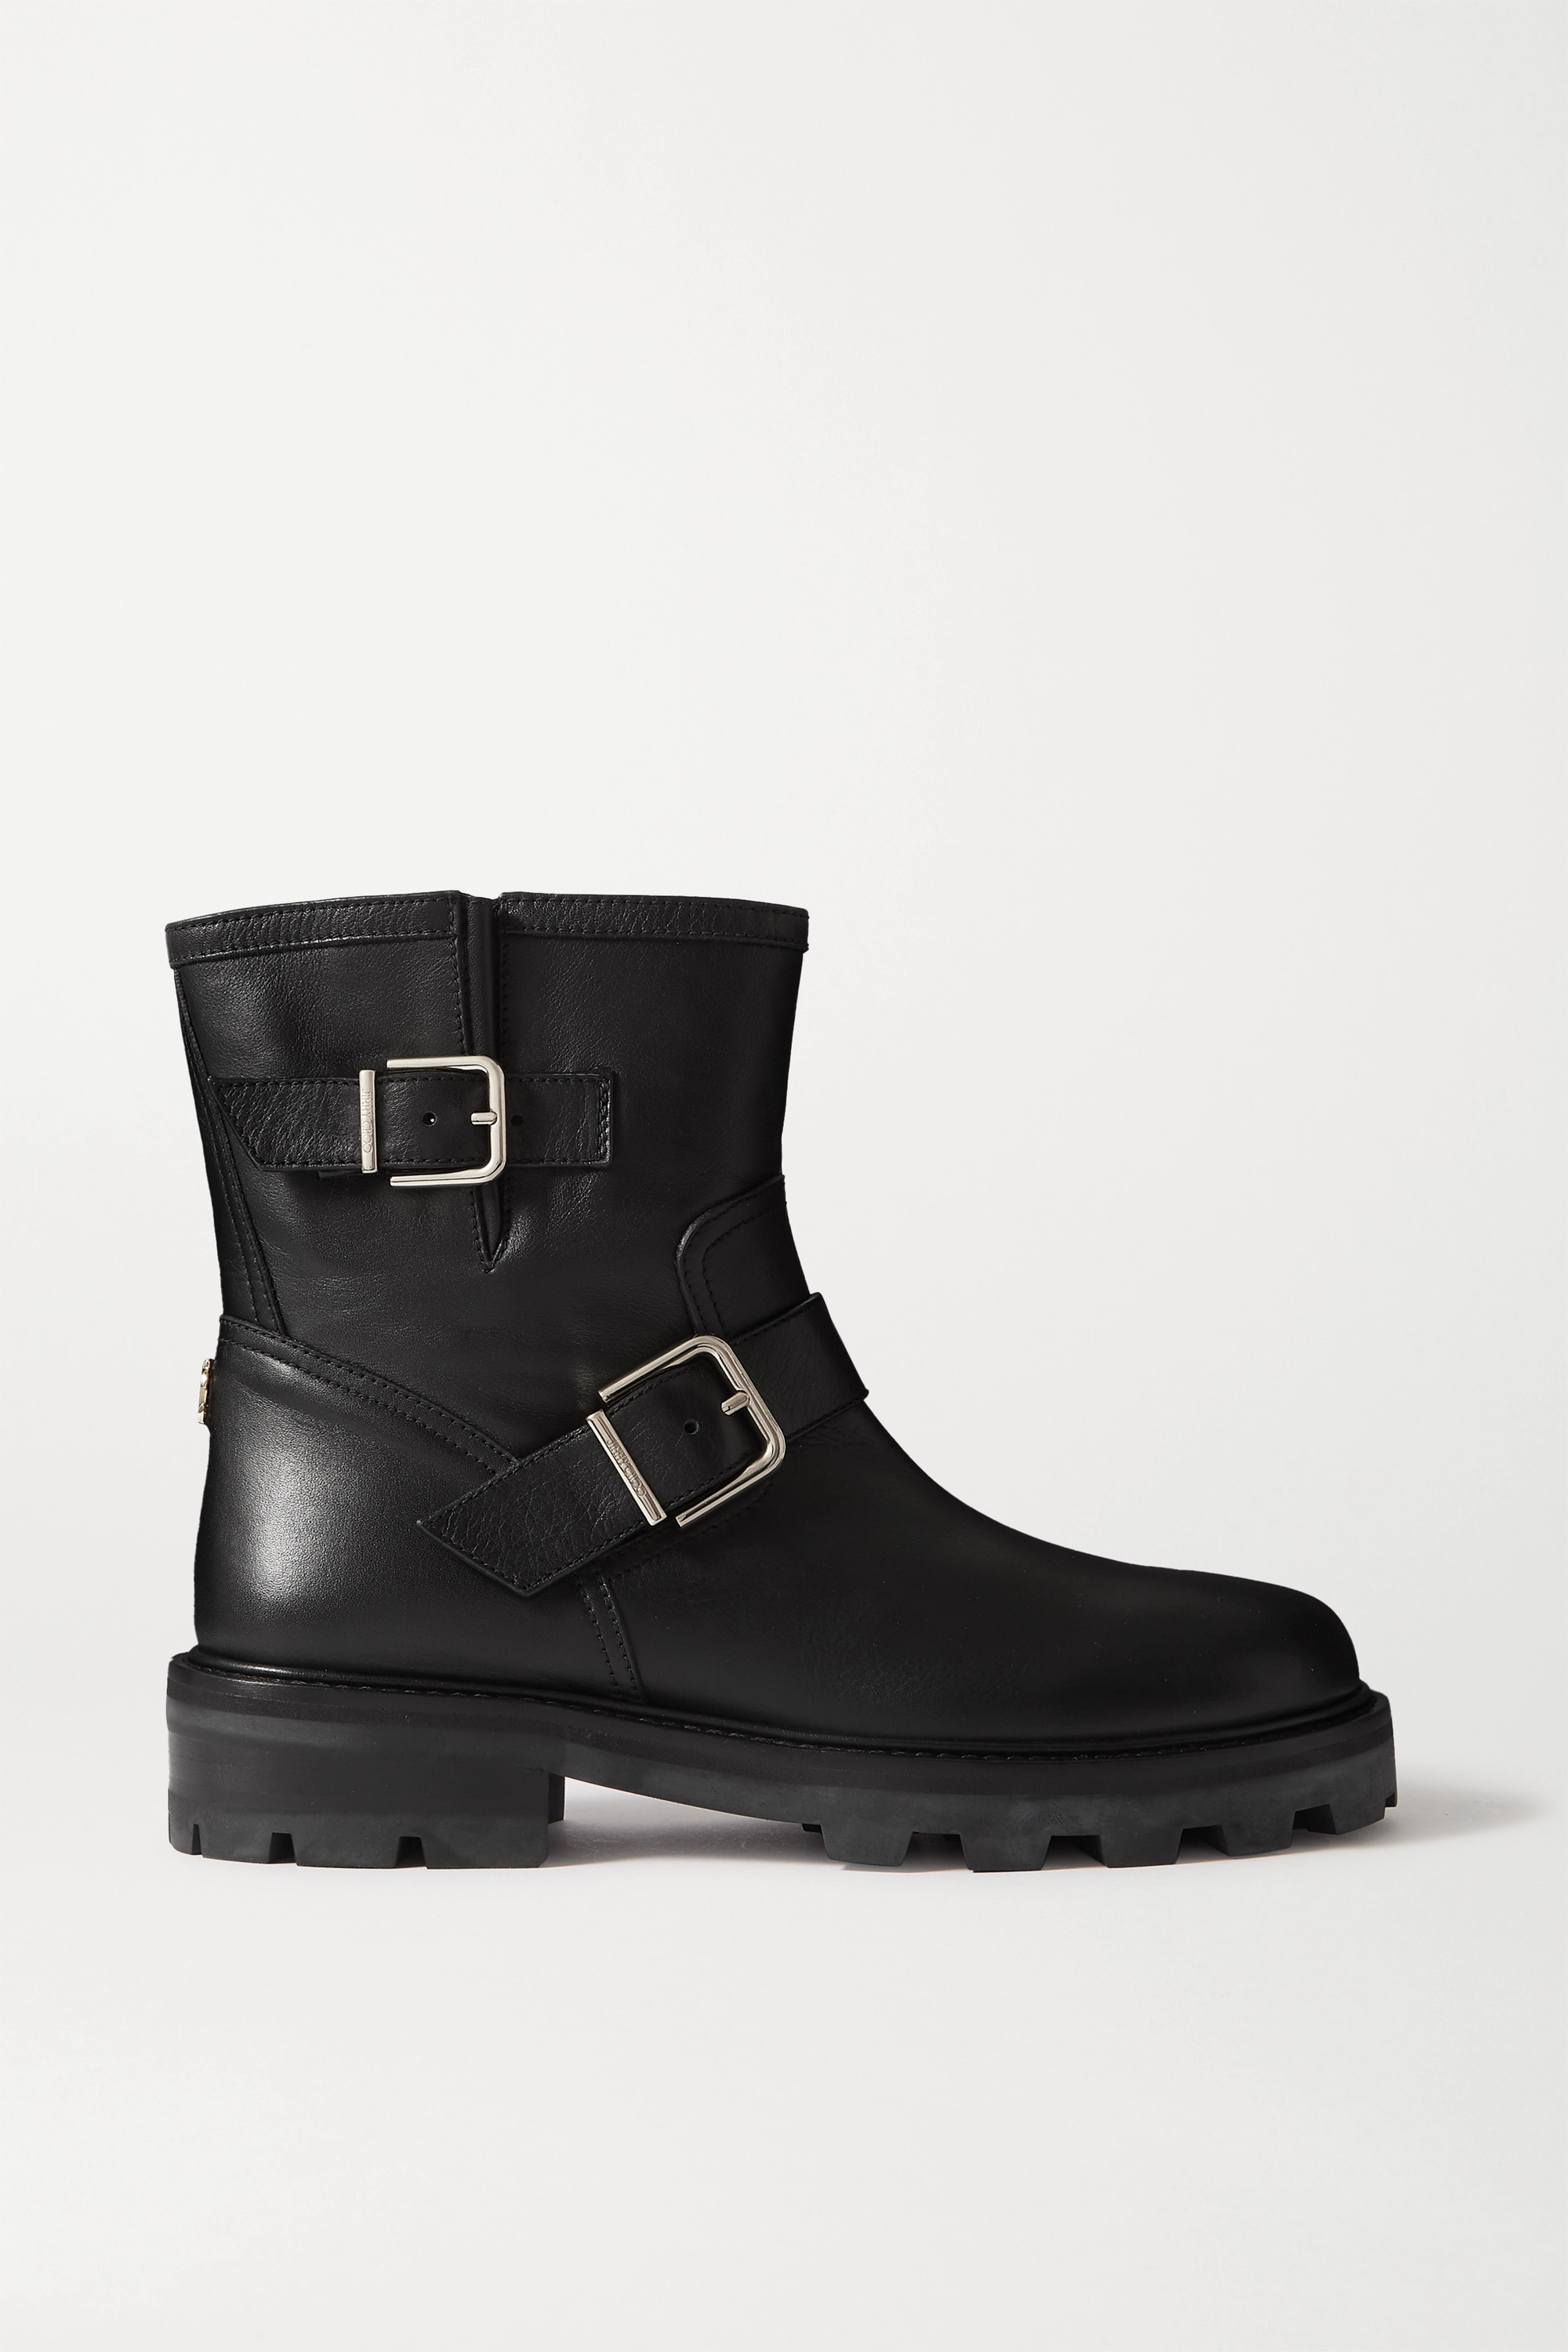 Jimmy Choo Youth II buckled leather ankle boots